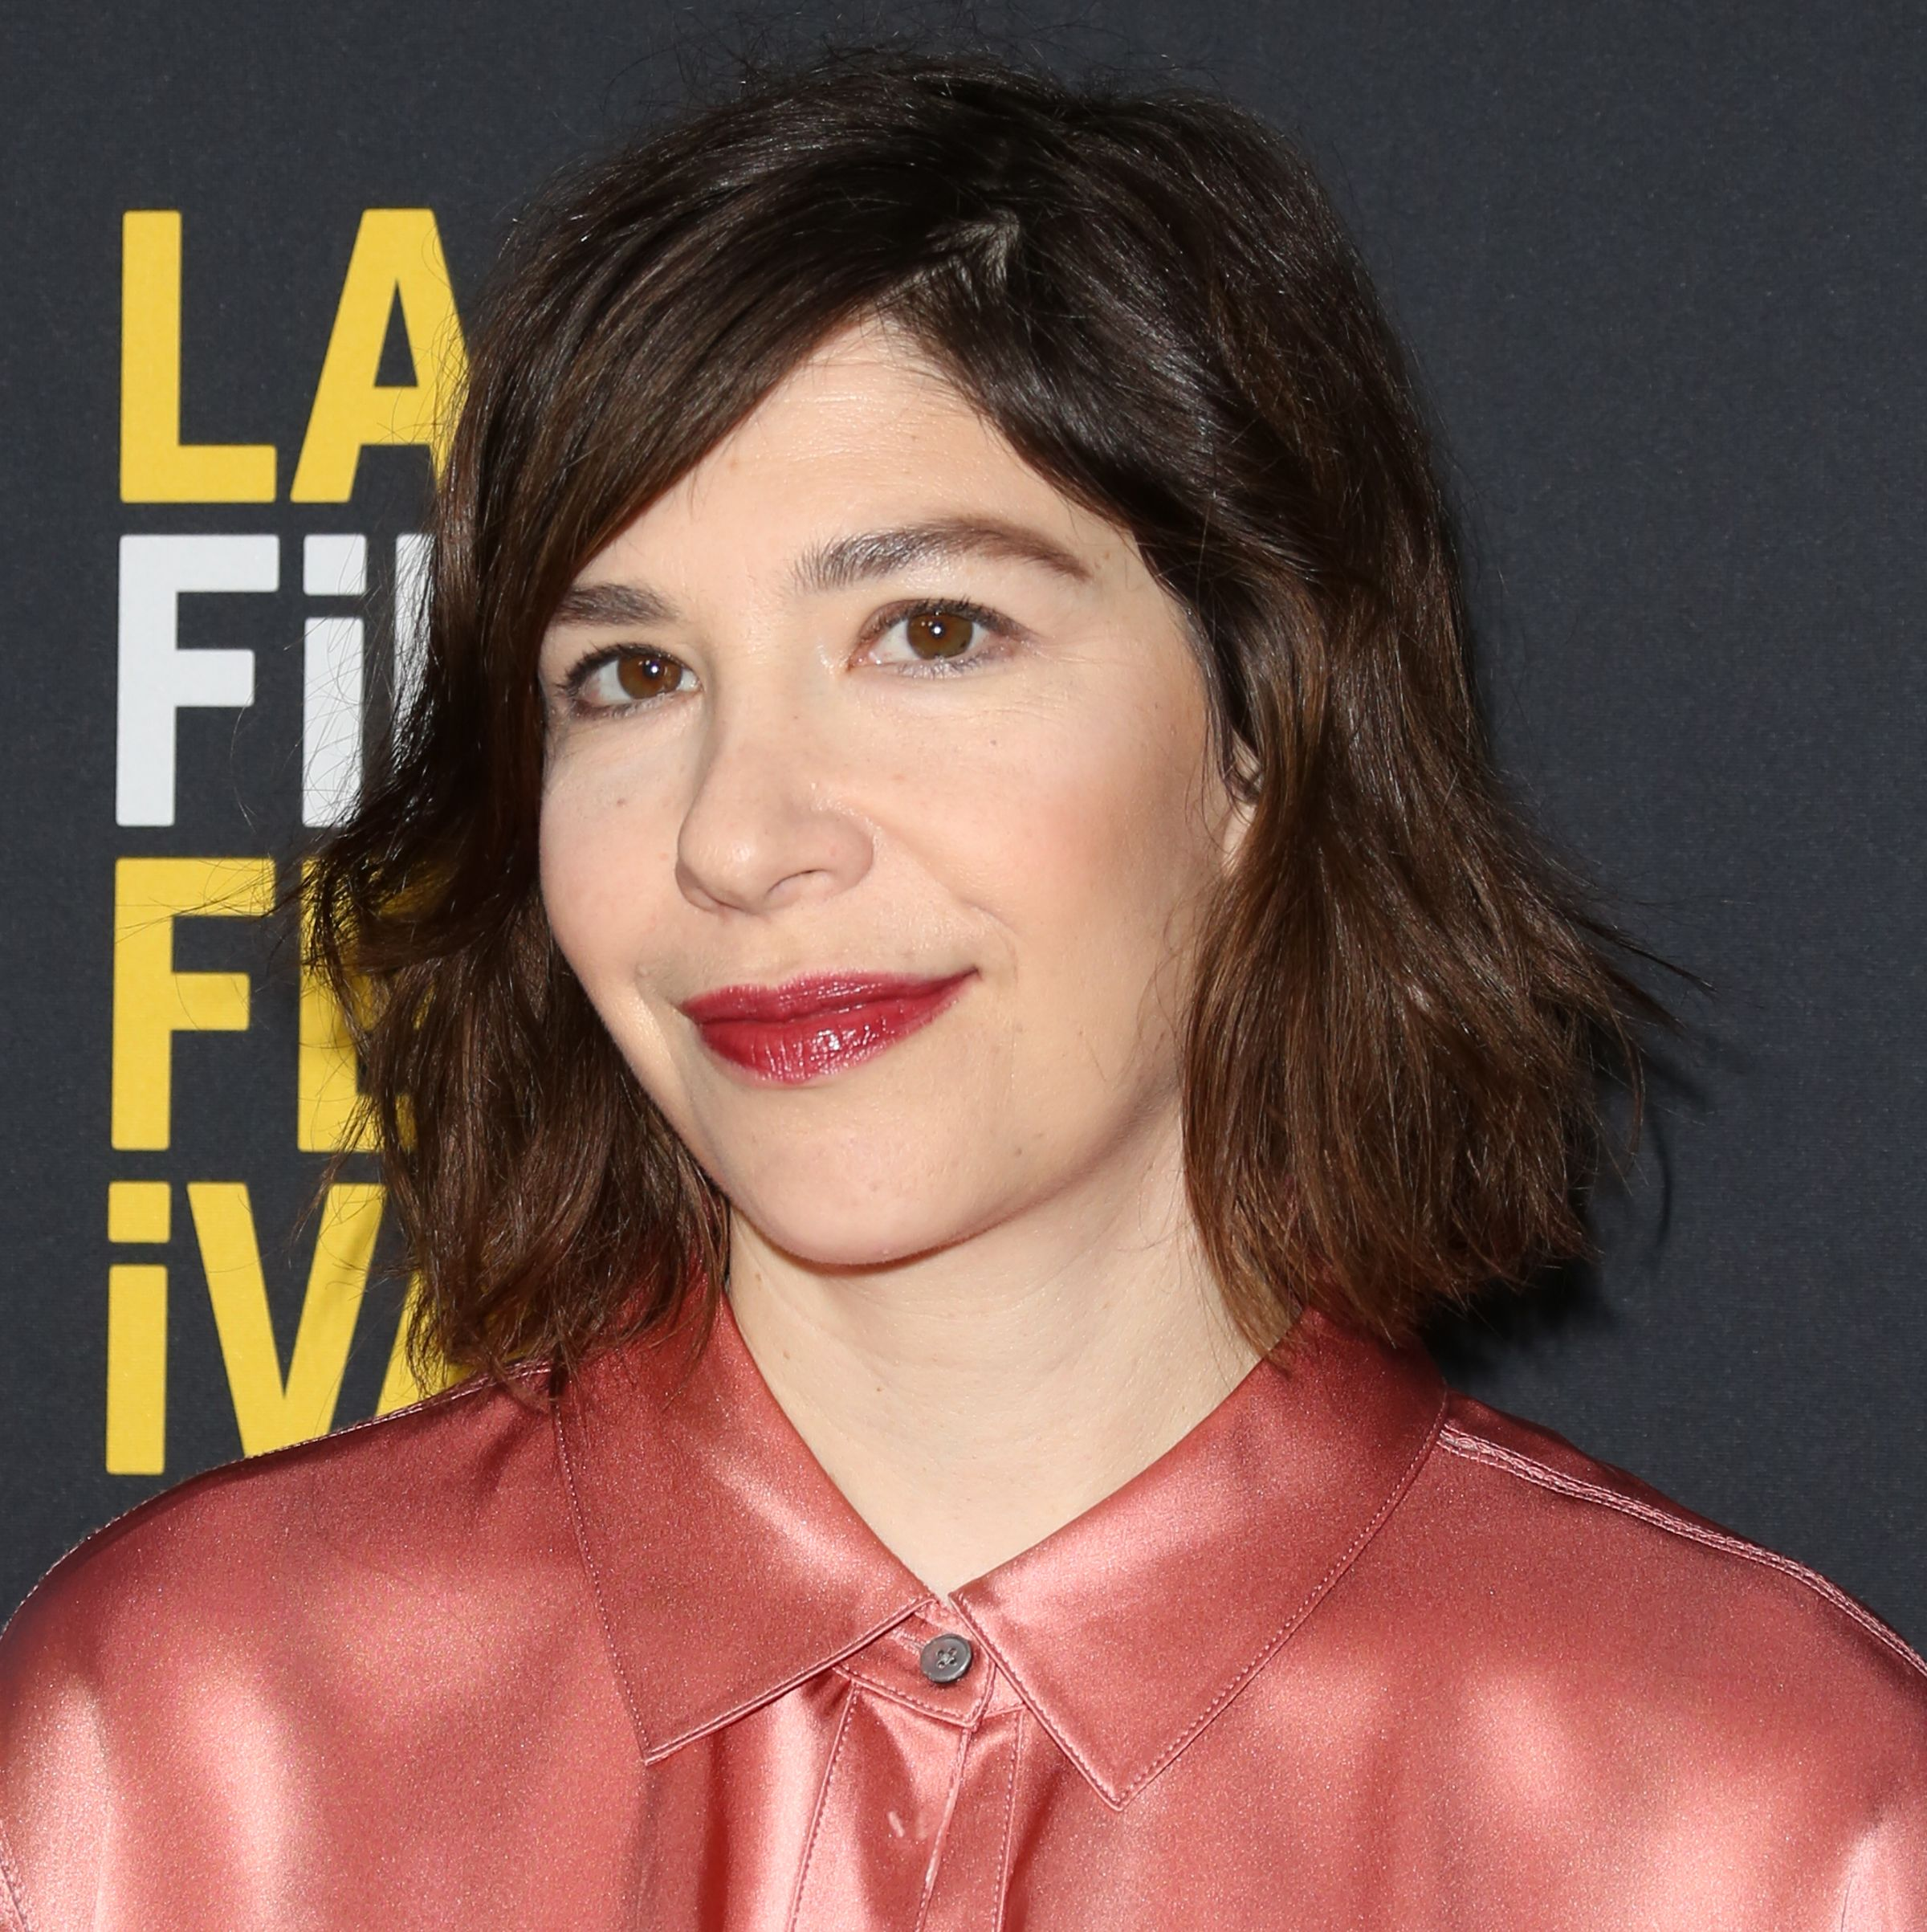 """""""Sometimes I feel like it's a lifelong struggle."""" """"Sometimes I feel like it's a lifelong struggle…I try to not isolate myself as much. It is really hard. People that are sensitive, you just feel too porous sometimes. There's this inertia that sets in, and it's hard to get out of bed,"""" Carrie Brownstein said in an October 2015 with Pitchfork about her memoir, Hunger Makes Me a Modern Girl ."""